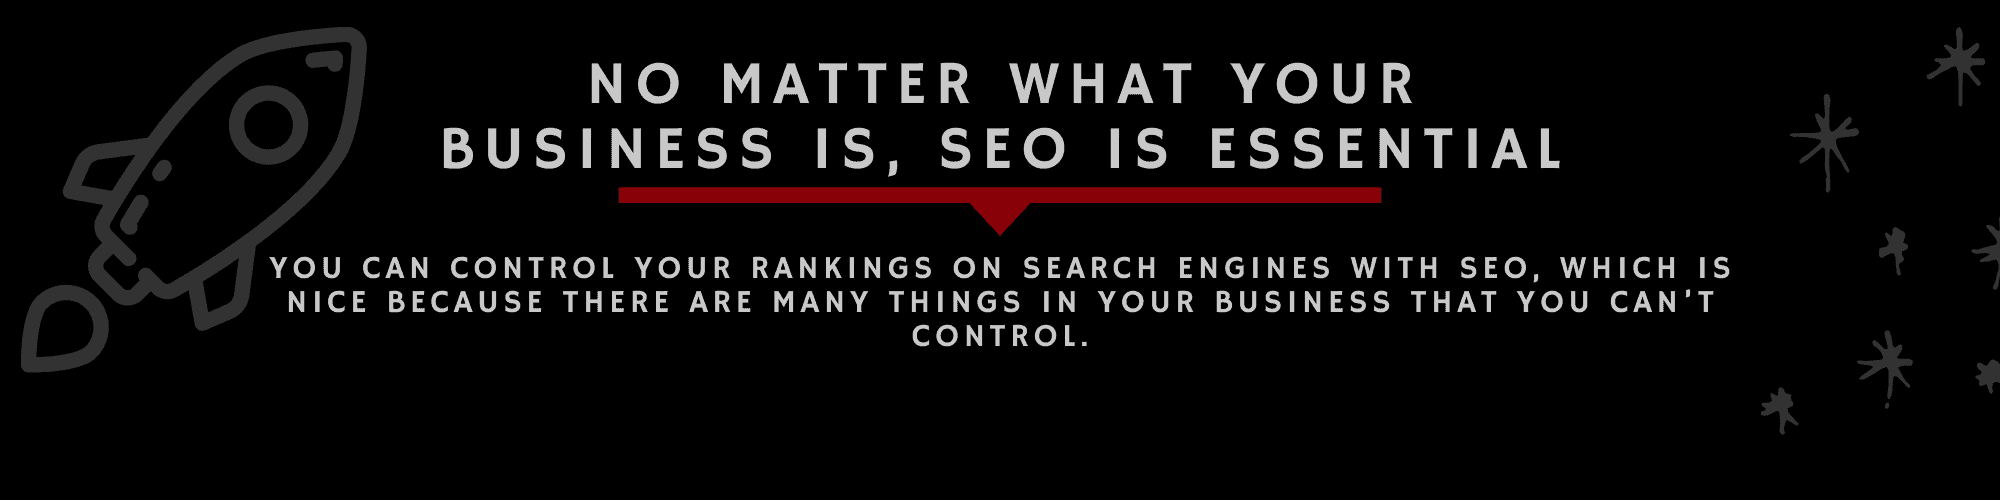 SEO Is Important for Your Business